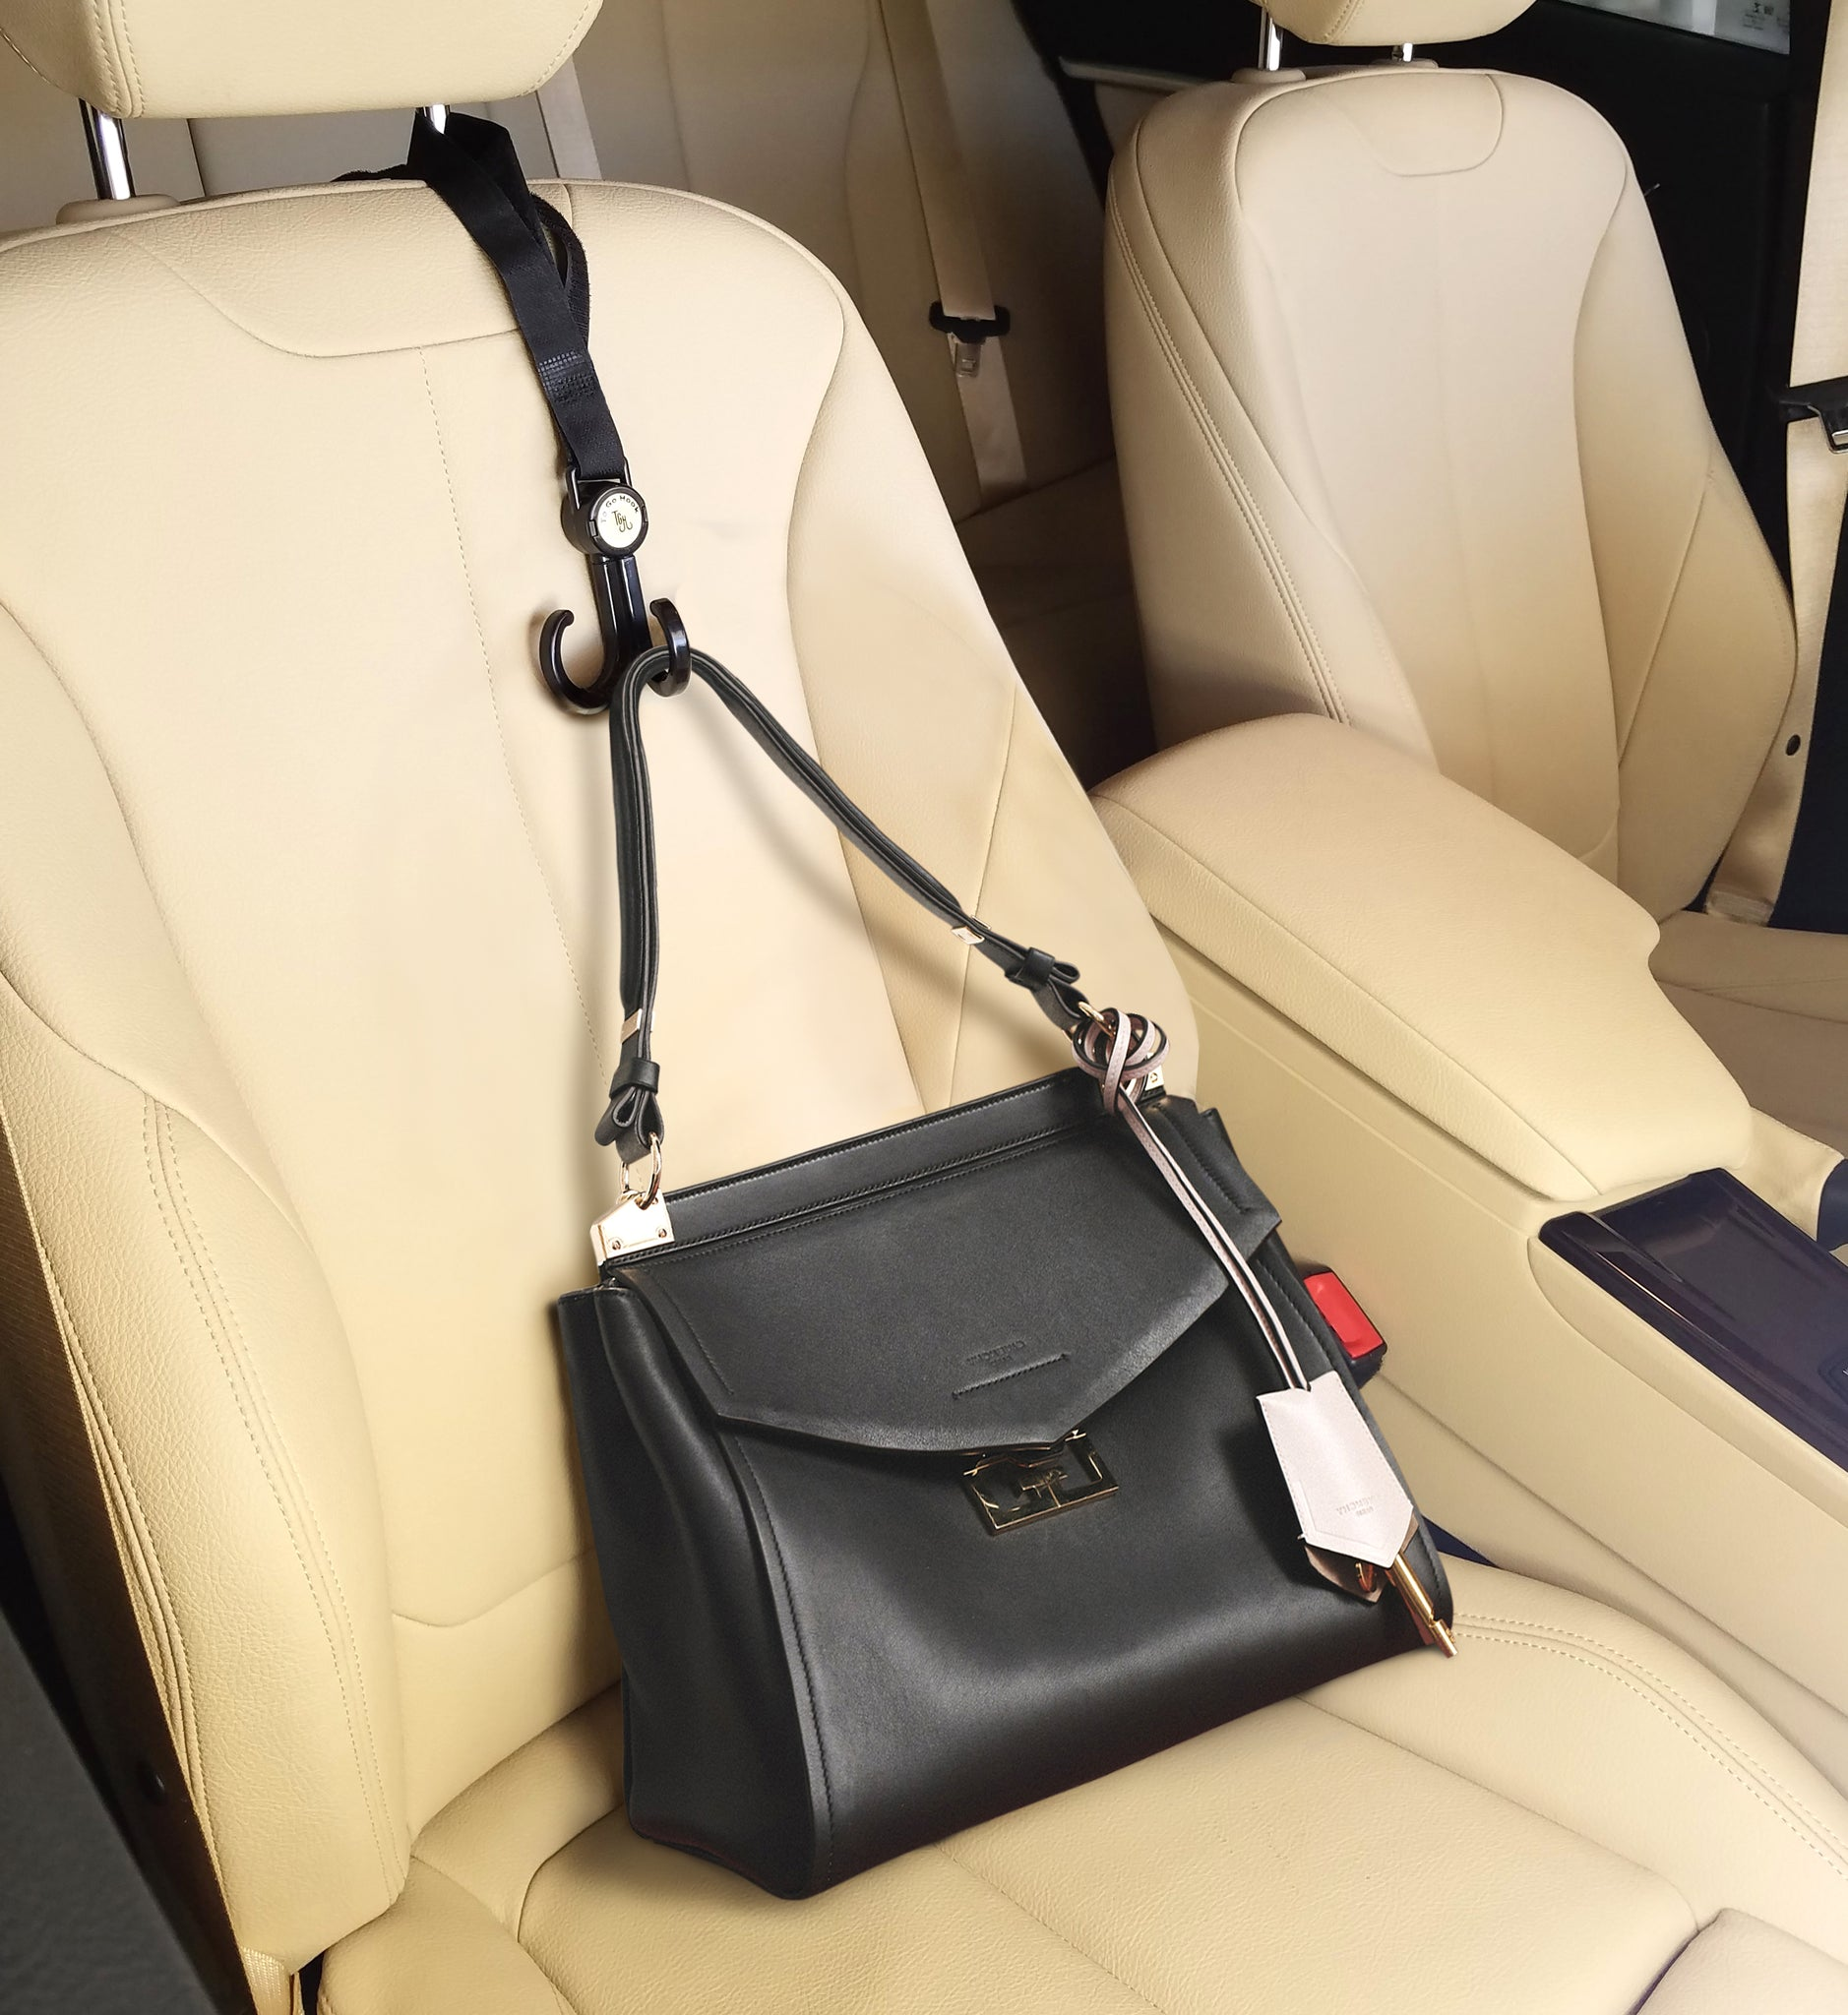 HeadRest Lasso is great as a car purse hook for your car. Car accessories for Lyft and Uber drivers.